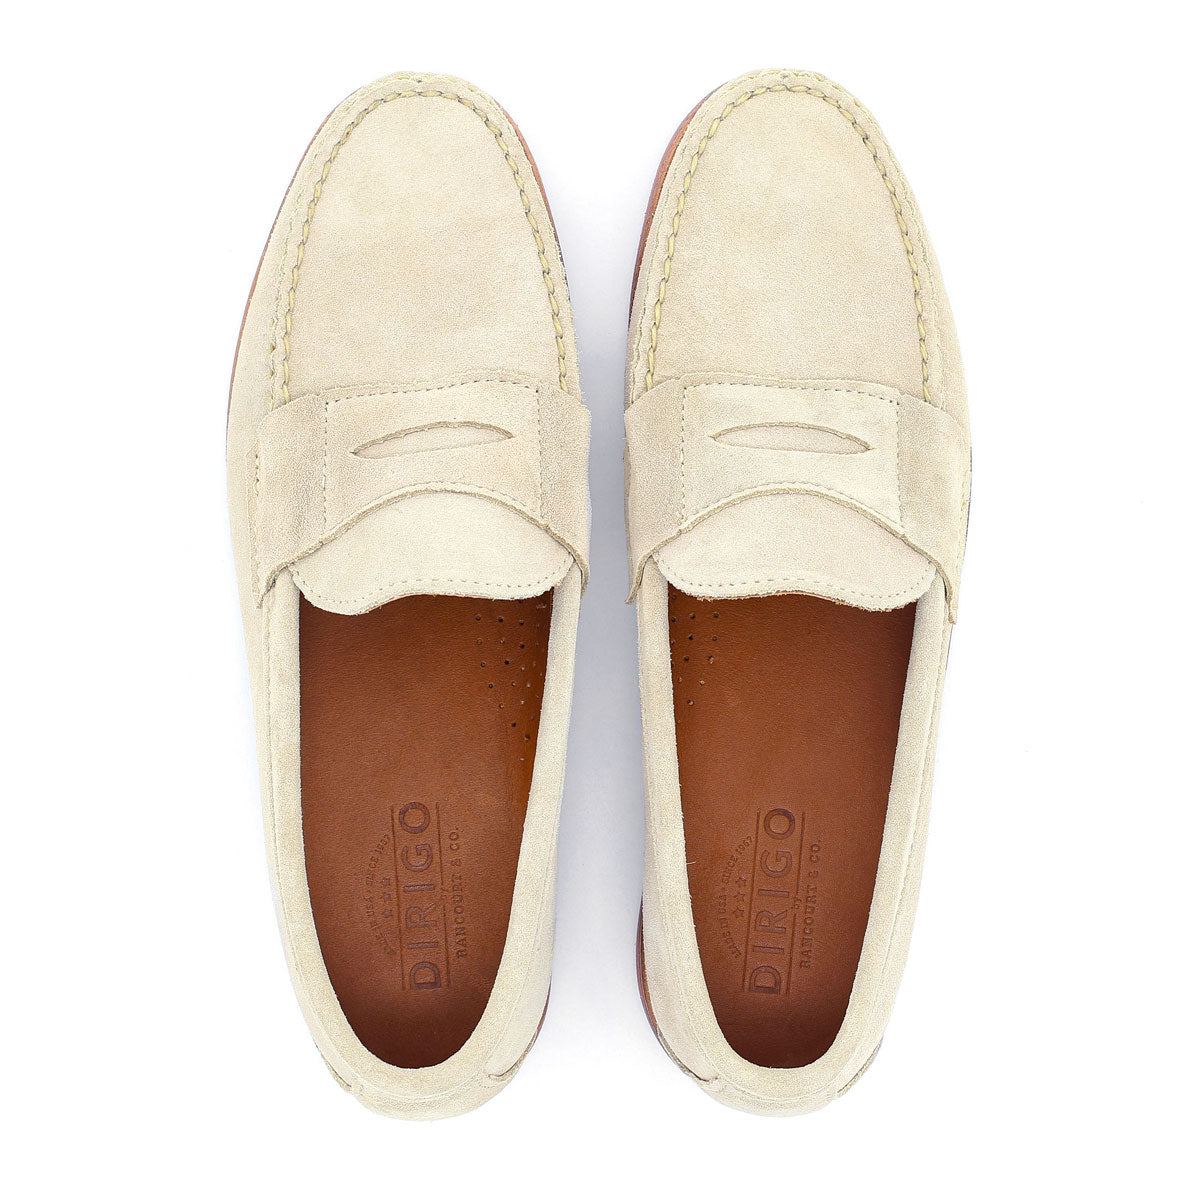 Dirigo Penny Loafers - Cream Suede